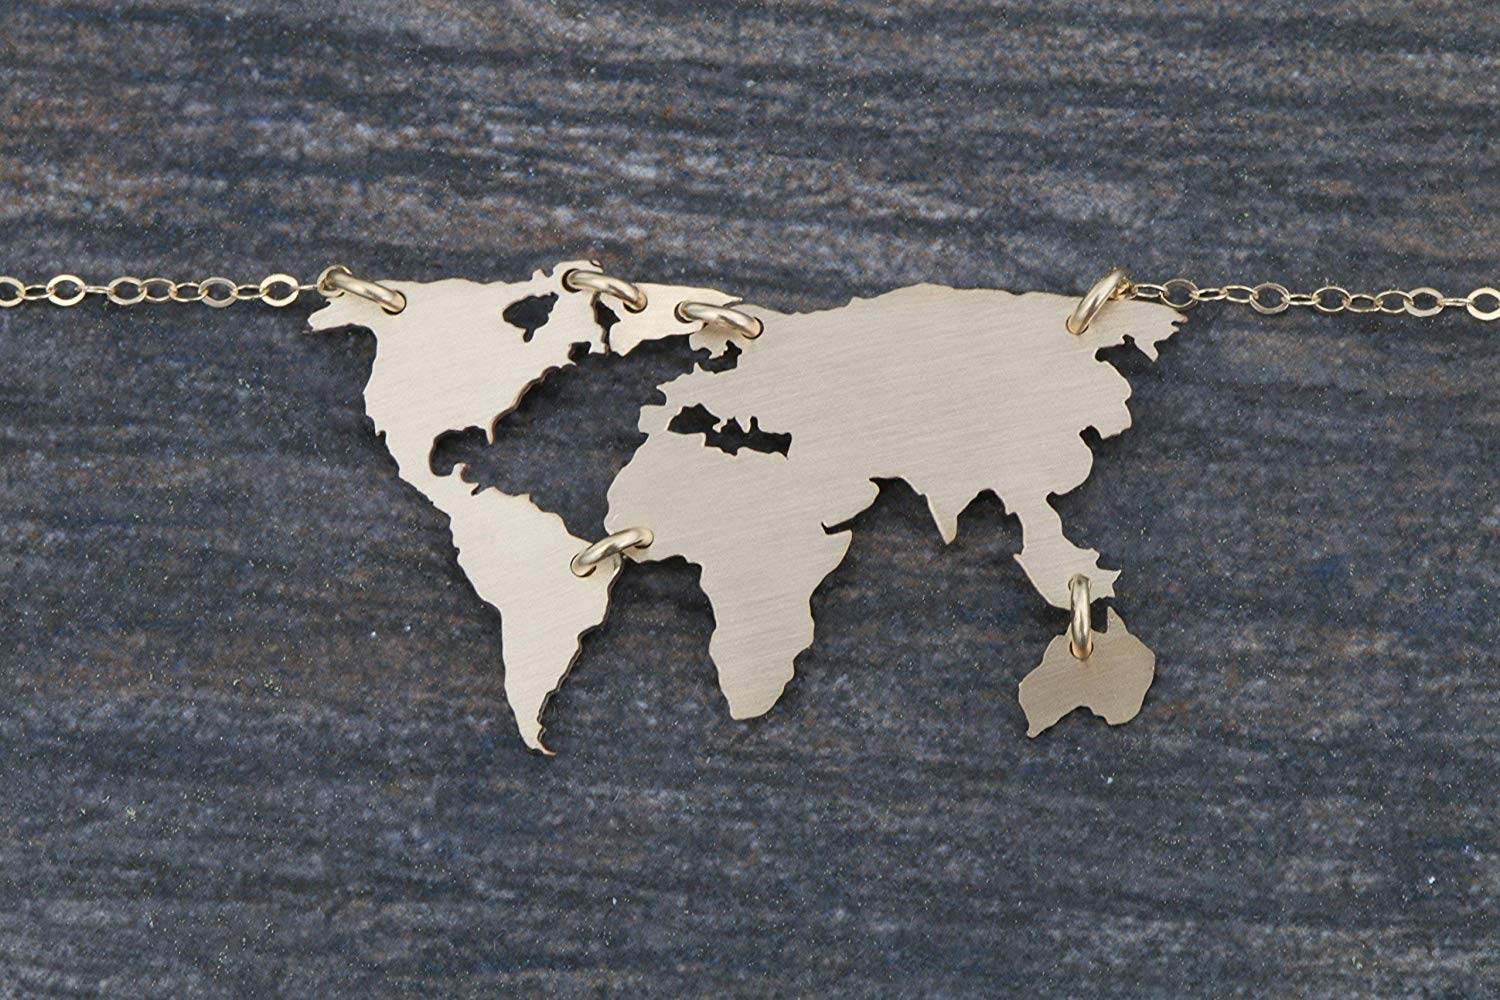 World Map Necklace - IBD - Earth Day Gift - 935 Sterling Silver 14K Gold Filled - 1.25 Inch x 3/4 31.75 MM x 19.05 - Globe Pendant - Travel Vacation Keepsake Memento